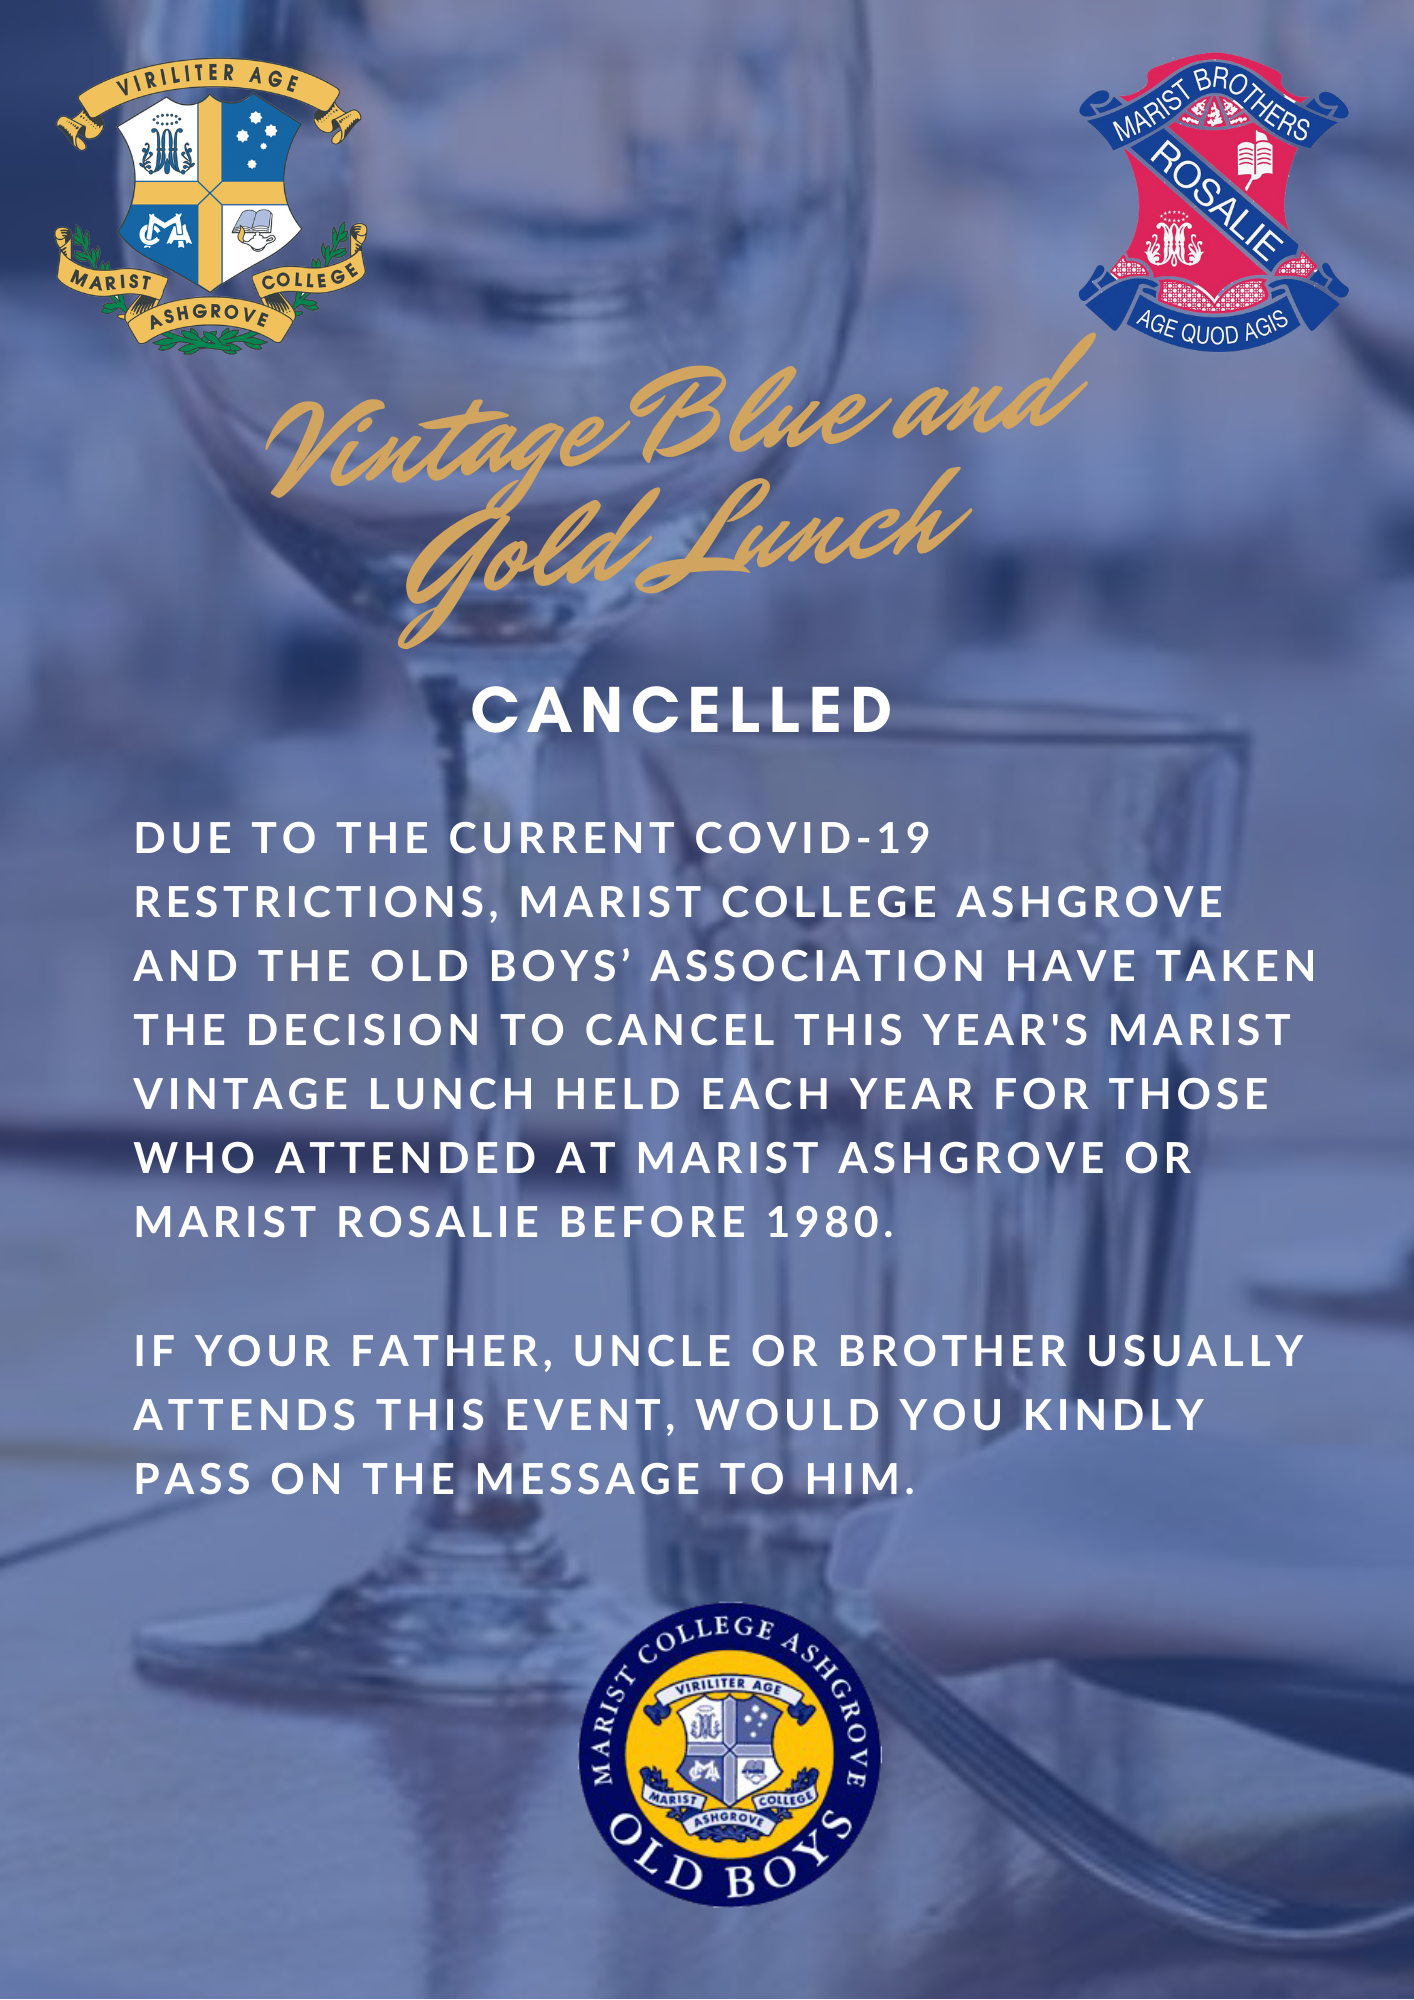 Vintage Blue and Gold Lunch Cancelled